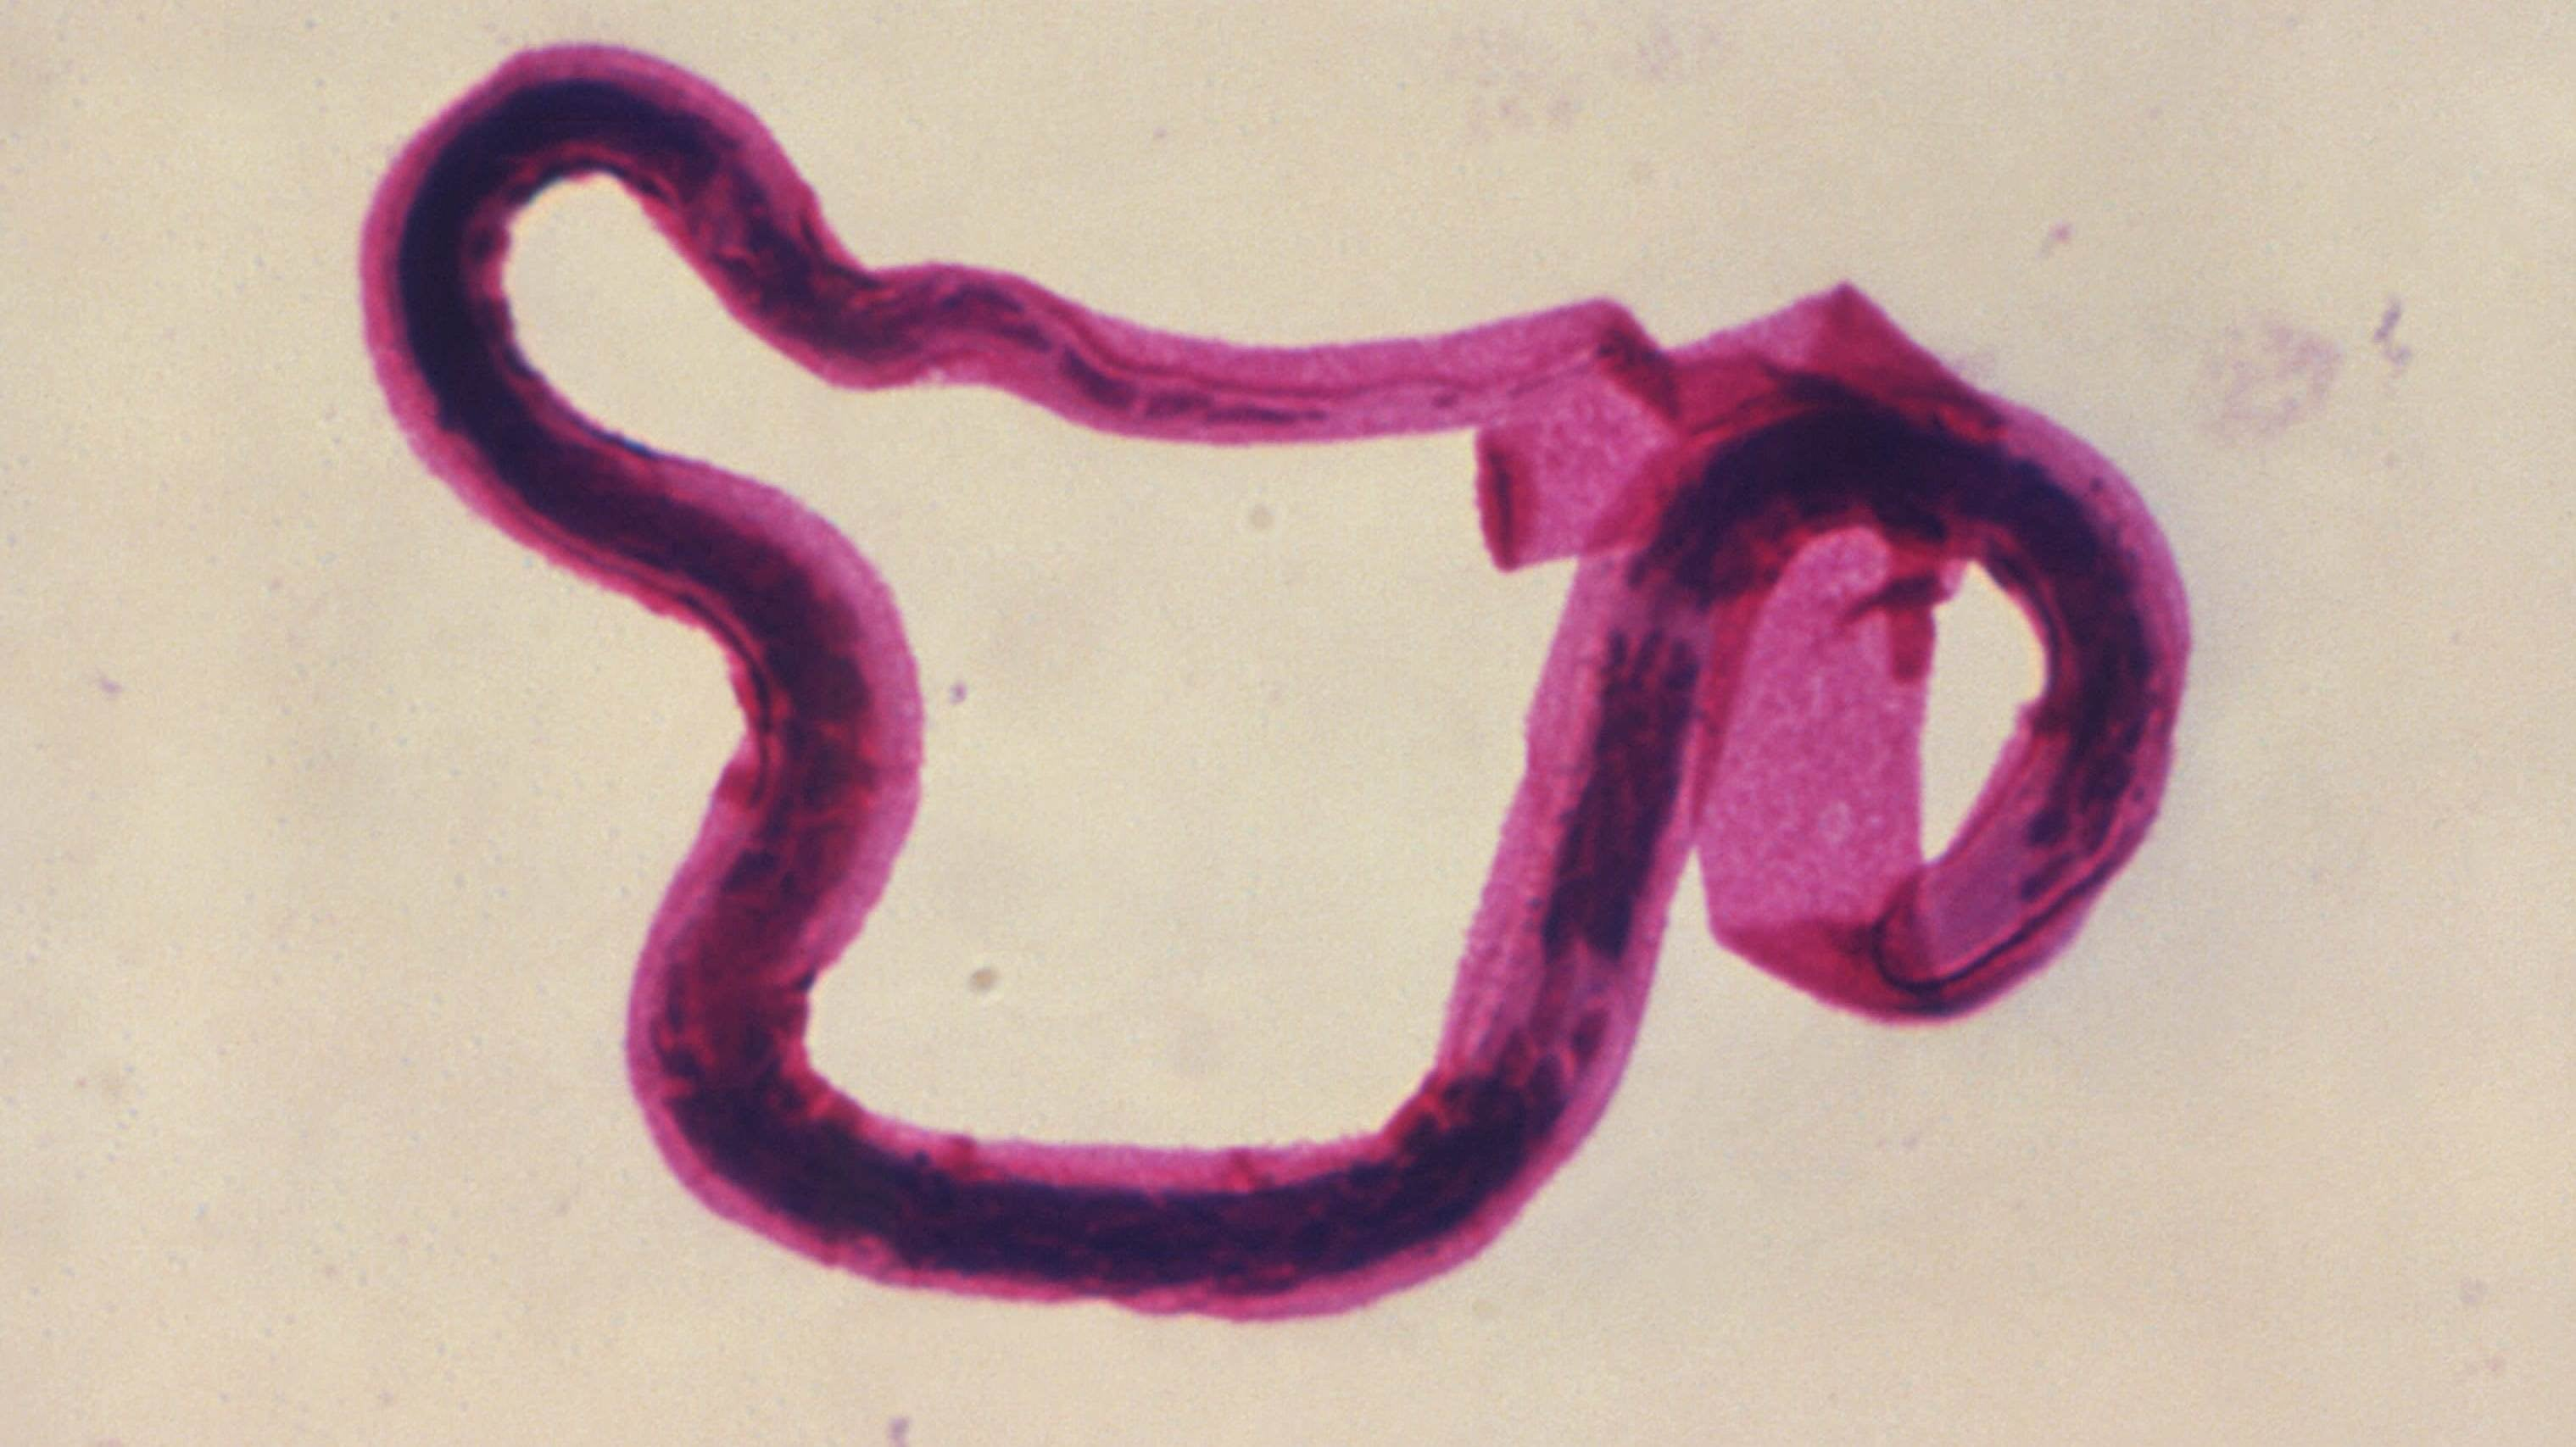 A Man's Worm Infection Left Him With A 'Stony Hard' Testicle